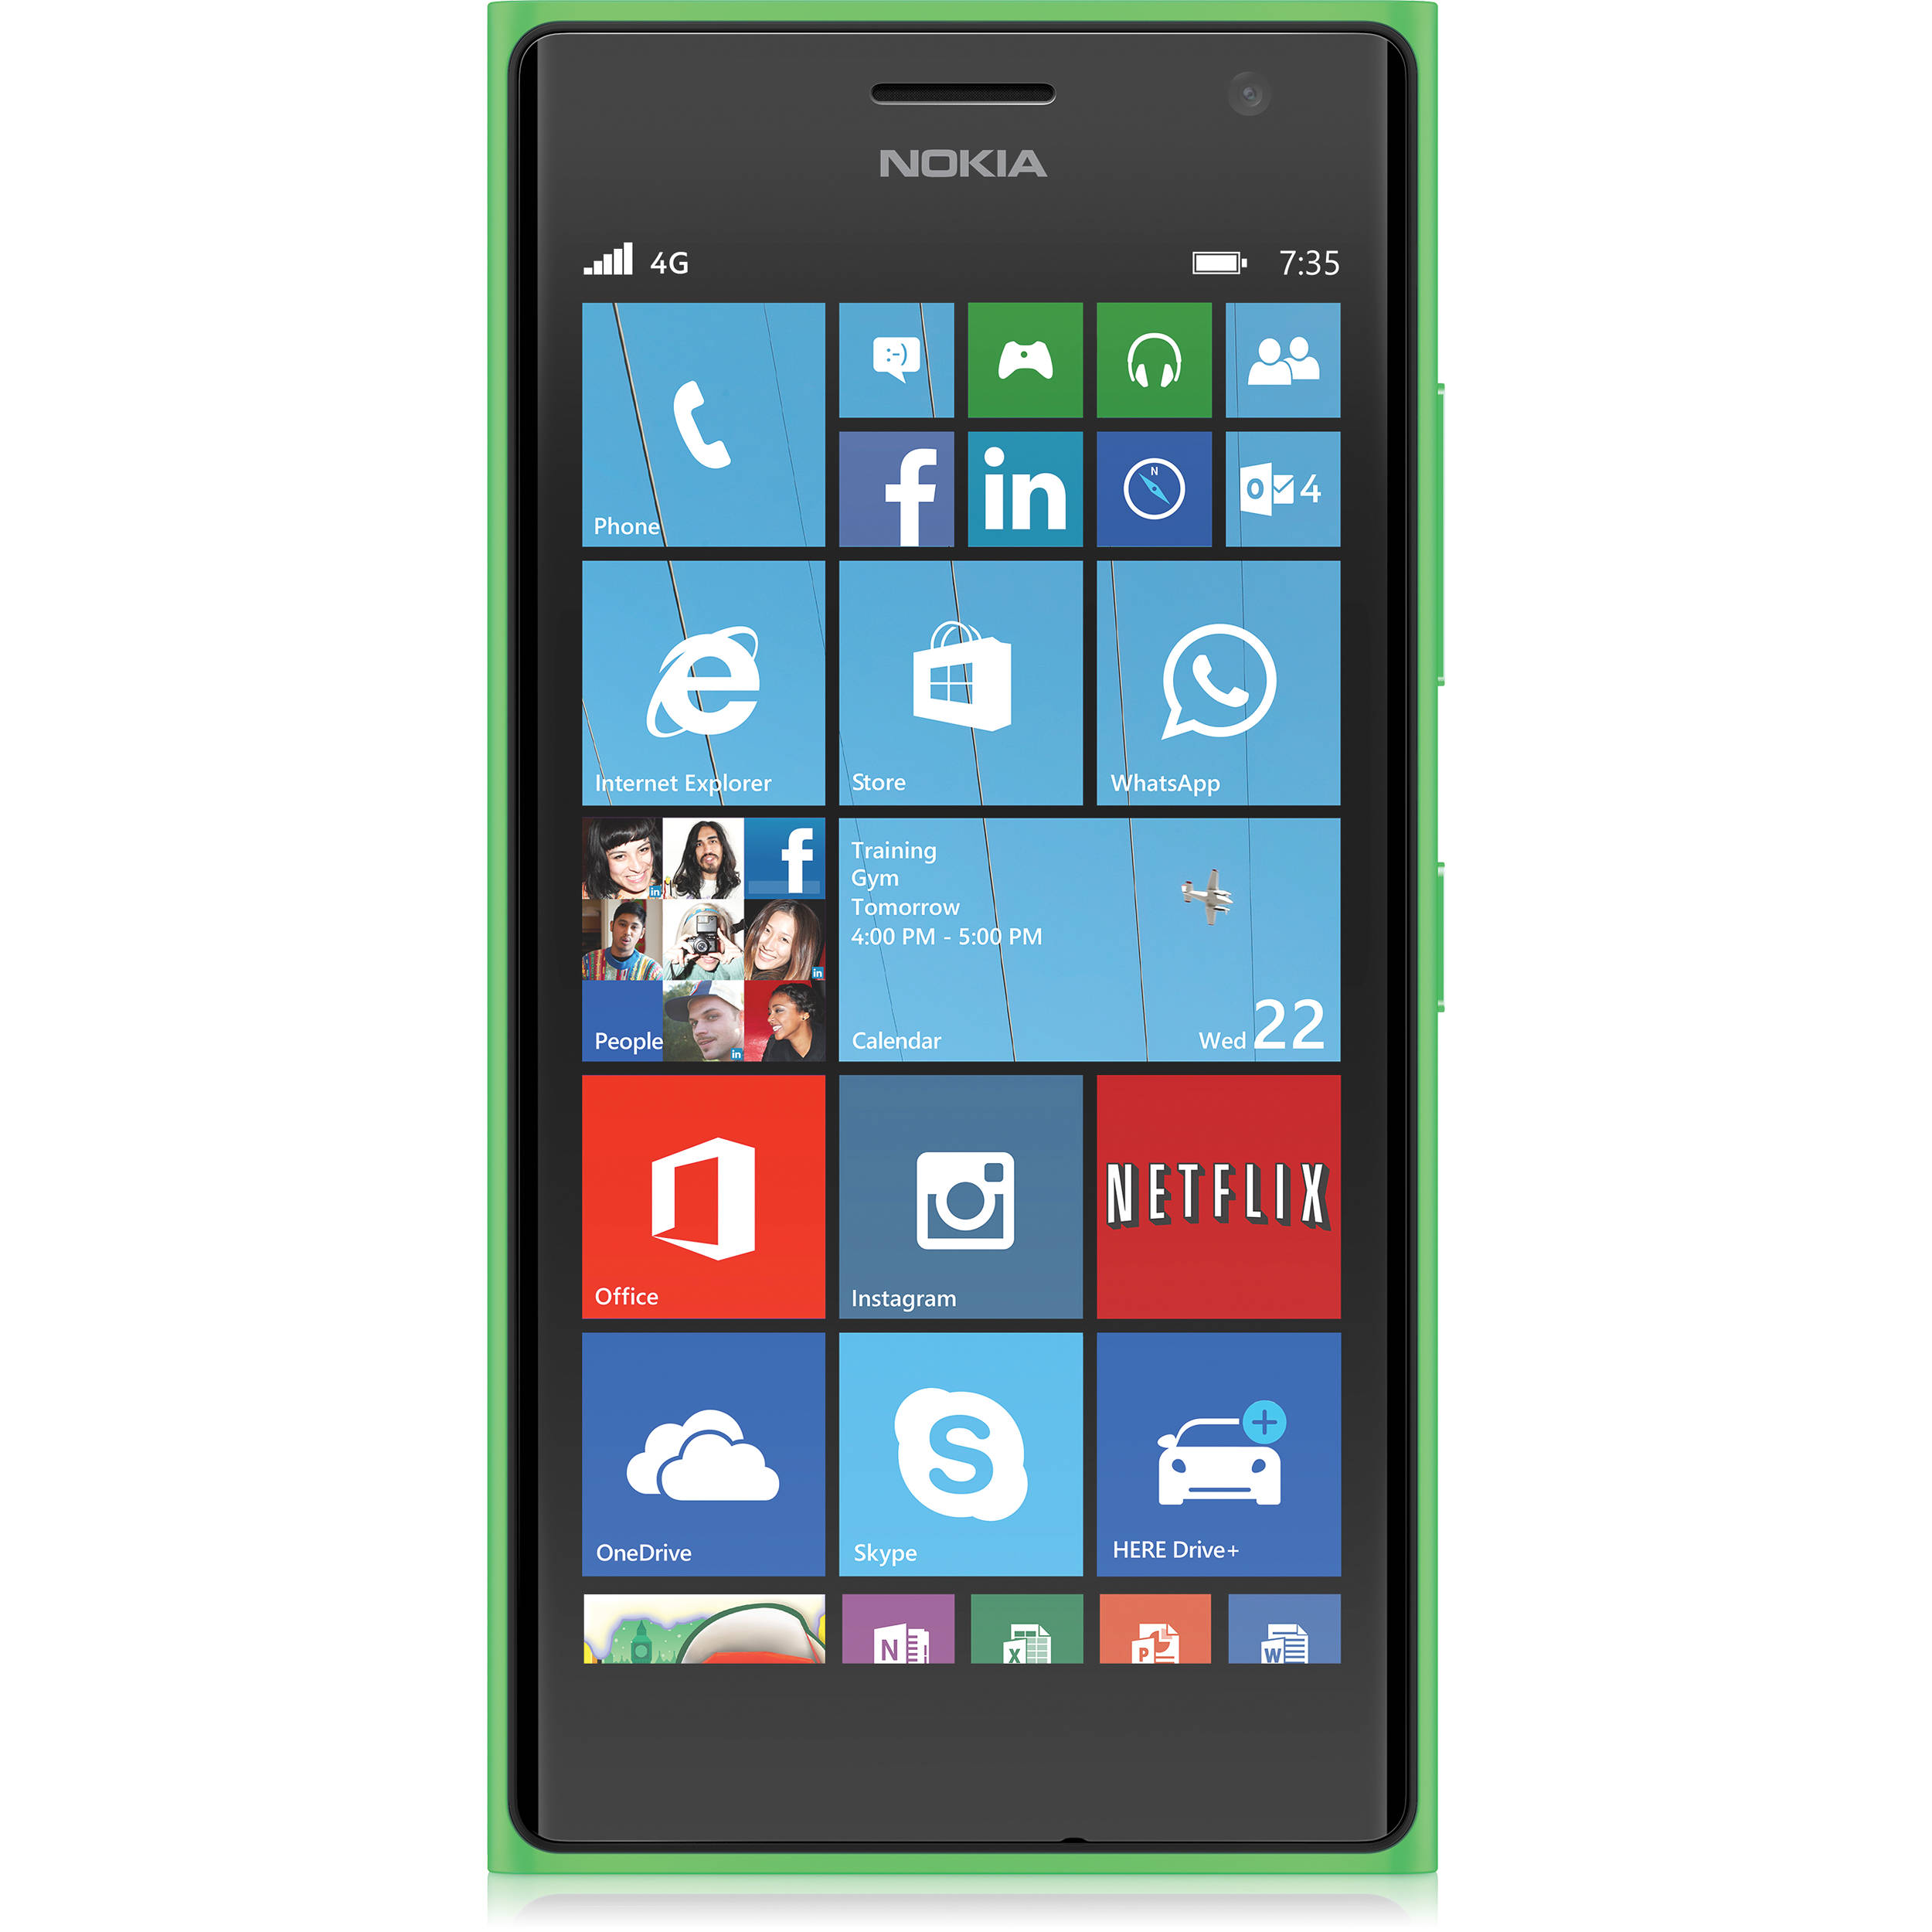 Nokia Lumia 735 RM-1039 8GB Smartphone (Unlocked, Bright Green)